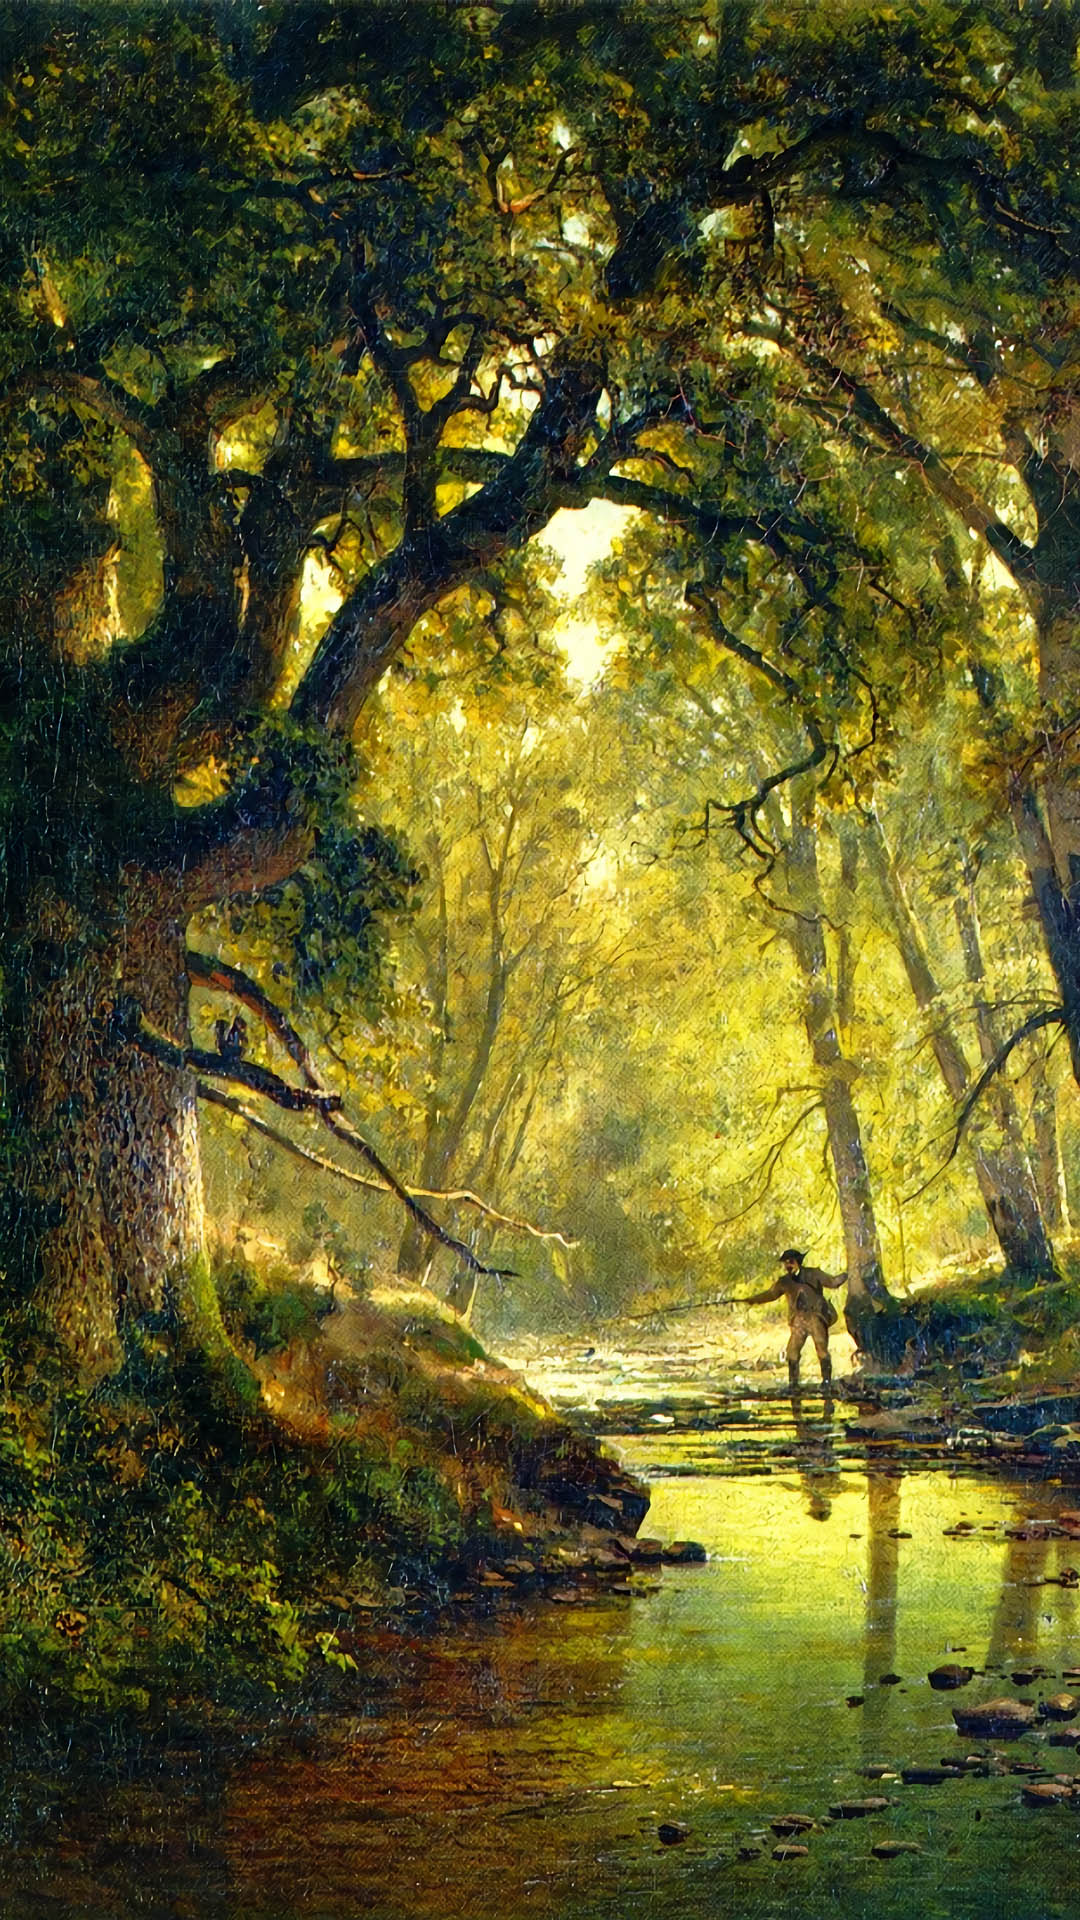 Thomas Hill - Angler in a Forest Interior 1080x1920